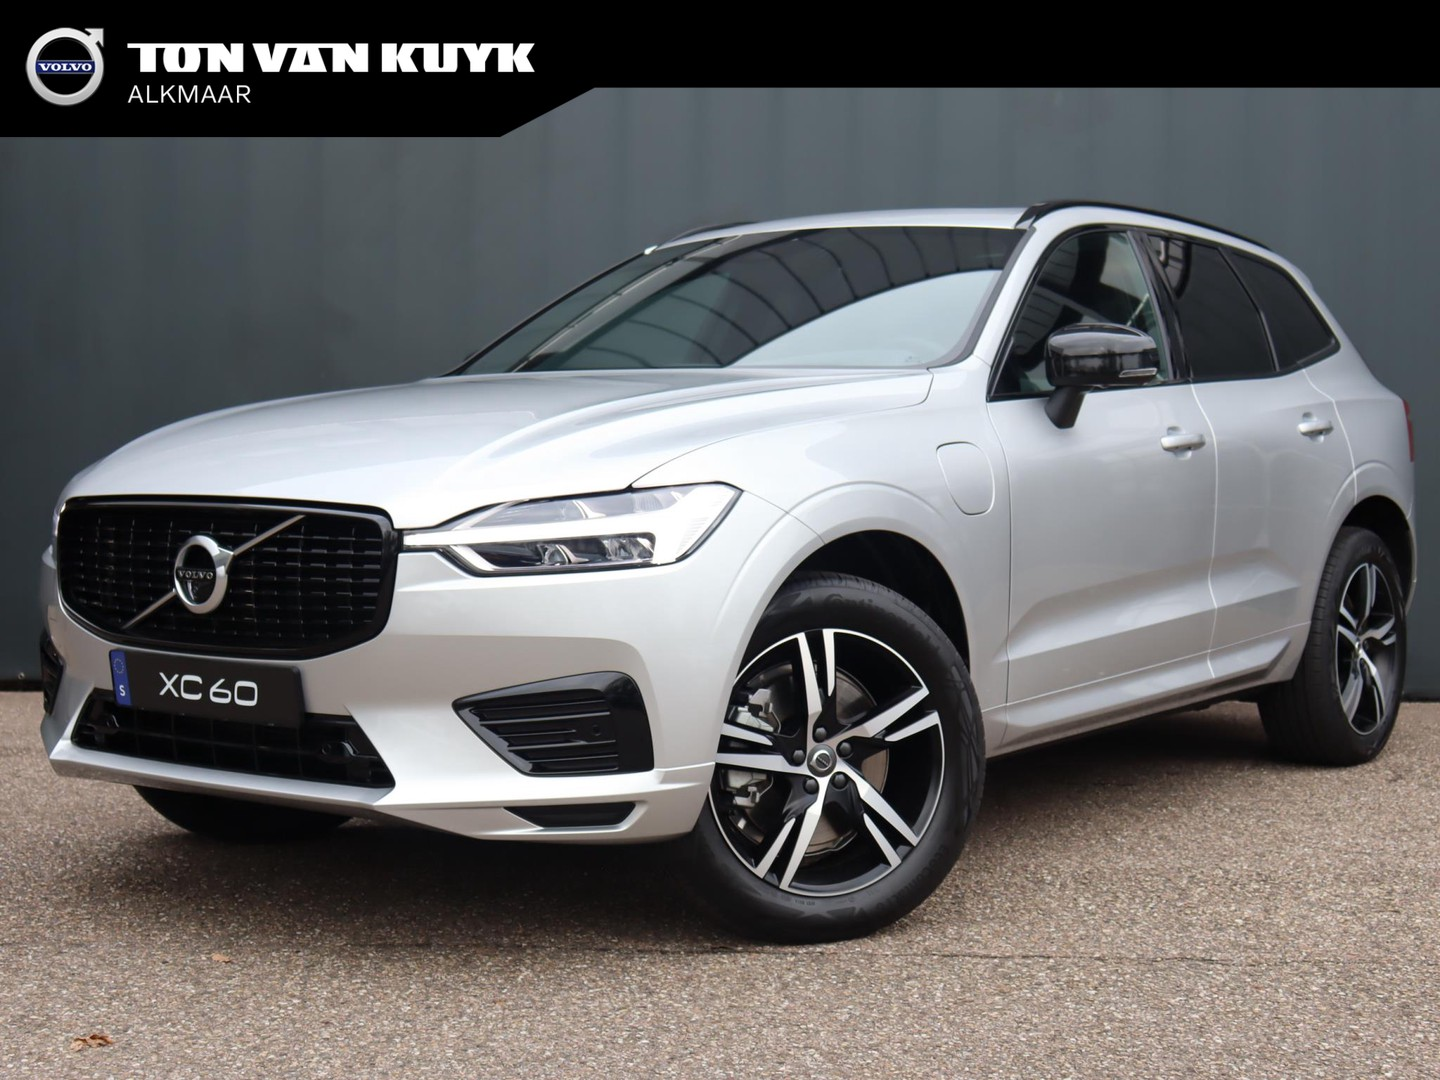 Volvo Xc60 2.0 recharge t6 awd r-design / climate pack / lounge pack / draadloos opladen / getint glas